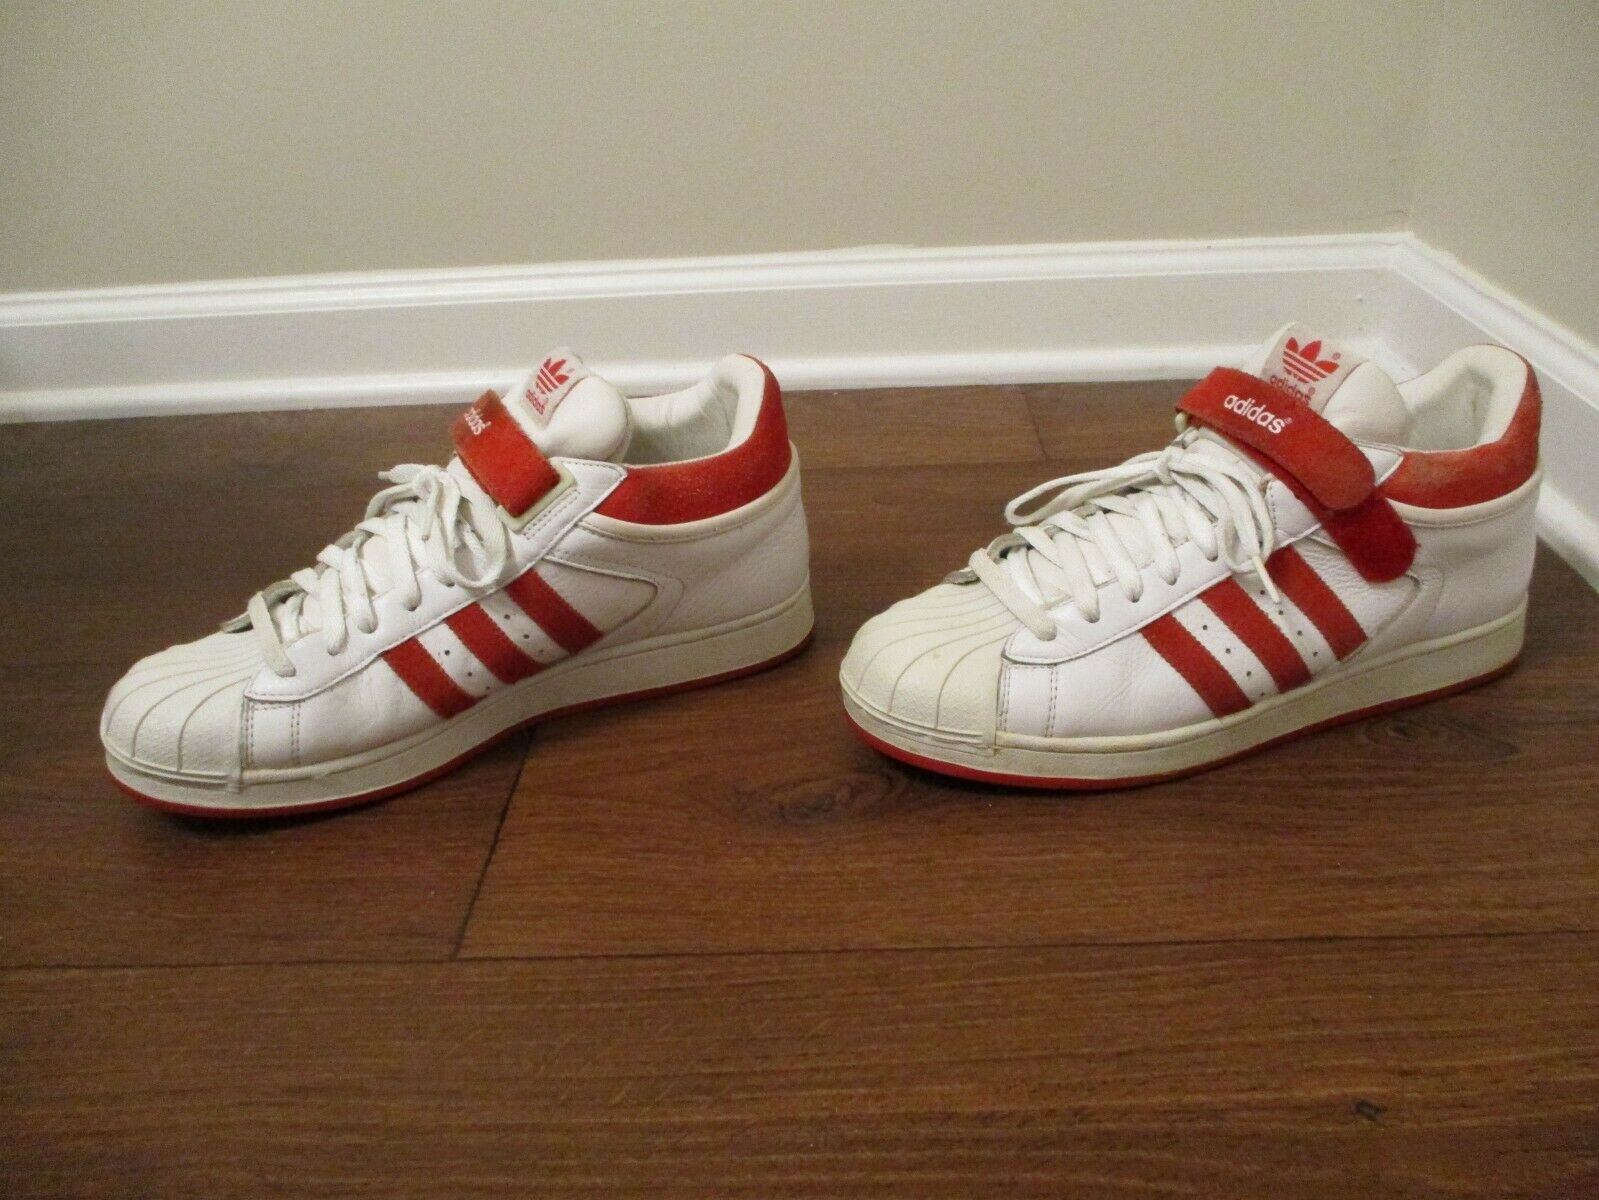 9ca7d241f66a9 Classic 2001 Used Worn Size 10.5 Adidas Proshell SD shoes White   Red